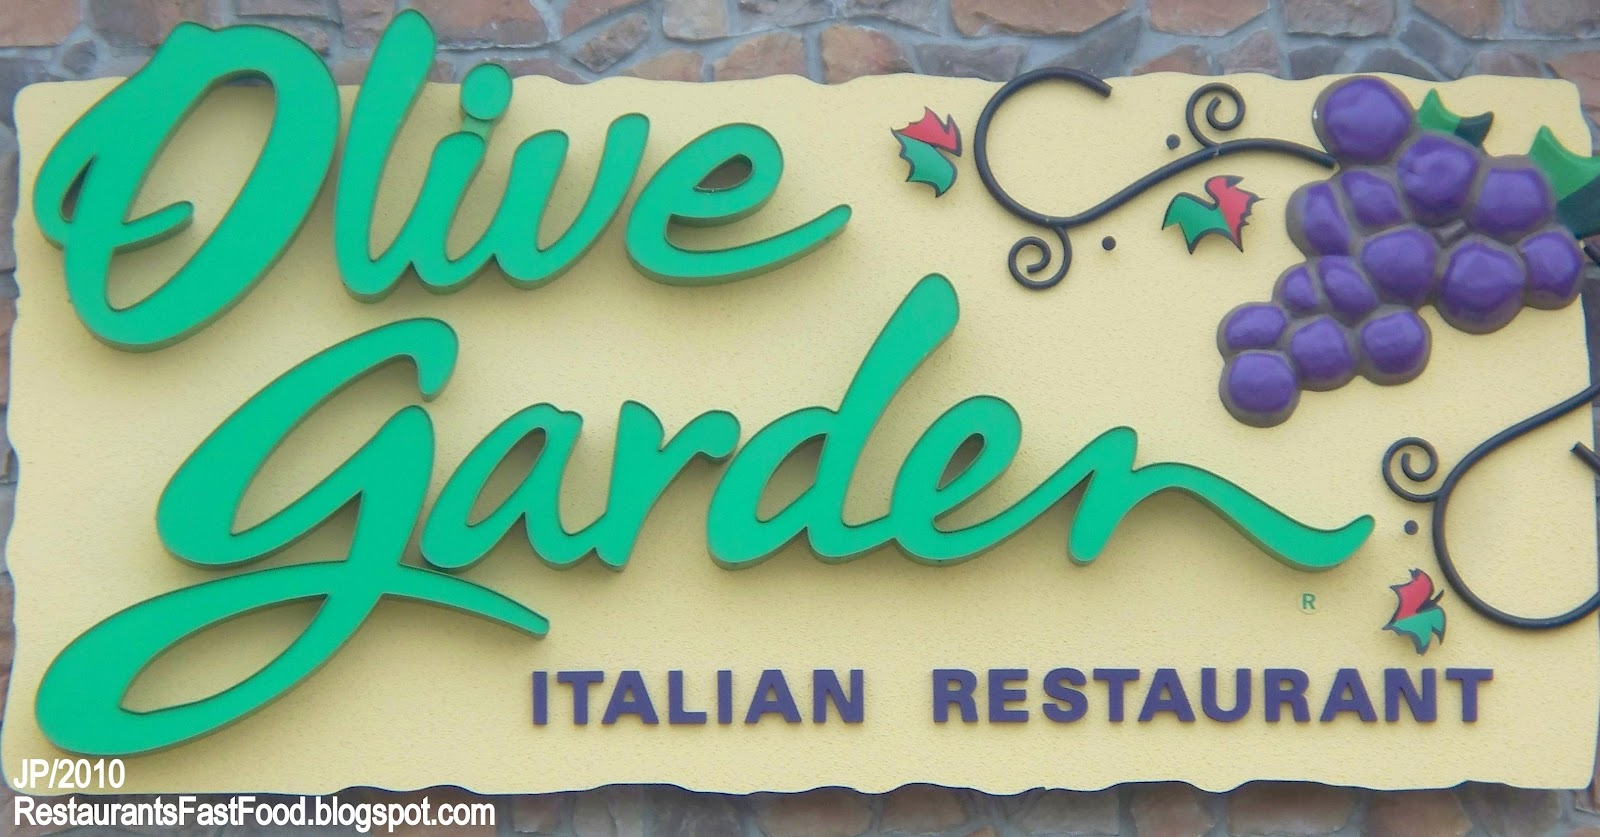 olive garden salt lake city utah casual italian restaurant 77 w 200 s salt lake city ut 84101 olive garden slc ut - Olive Garden Salt Lake City